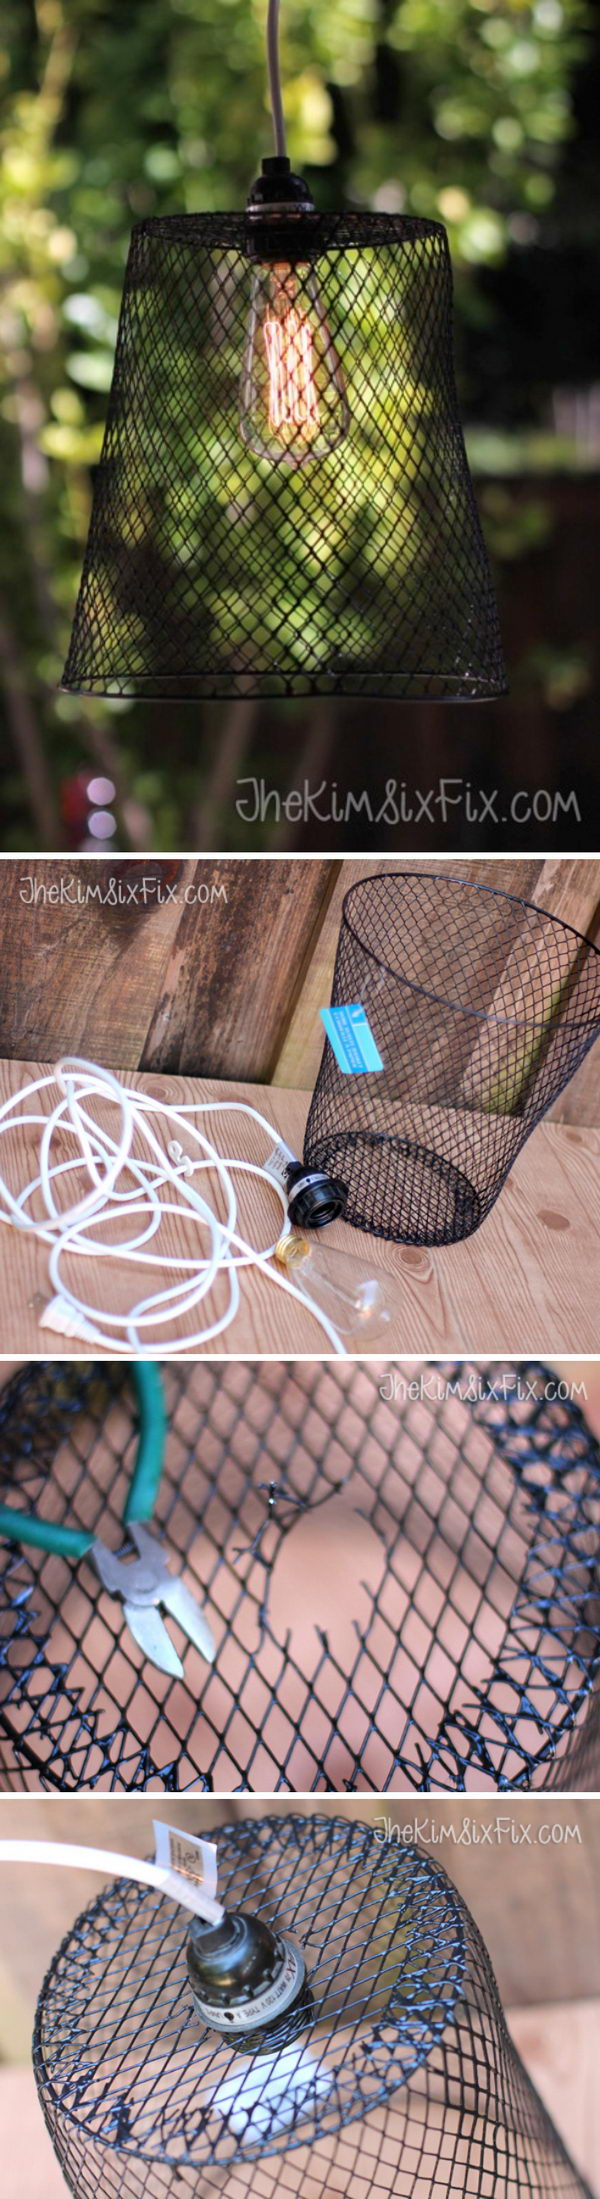 2 outdoor lighting diy ideas tutorials - 15 Easy DIY Outdoor Lighting Ideas